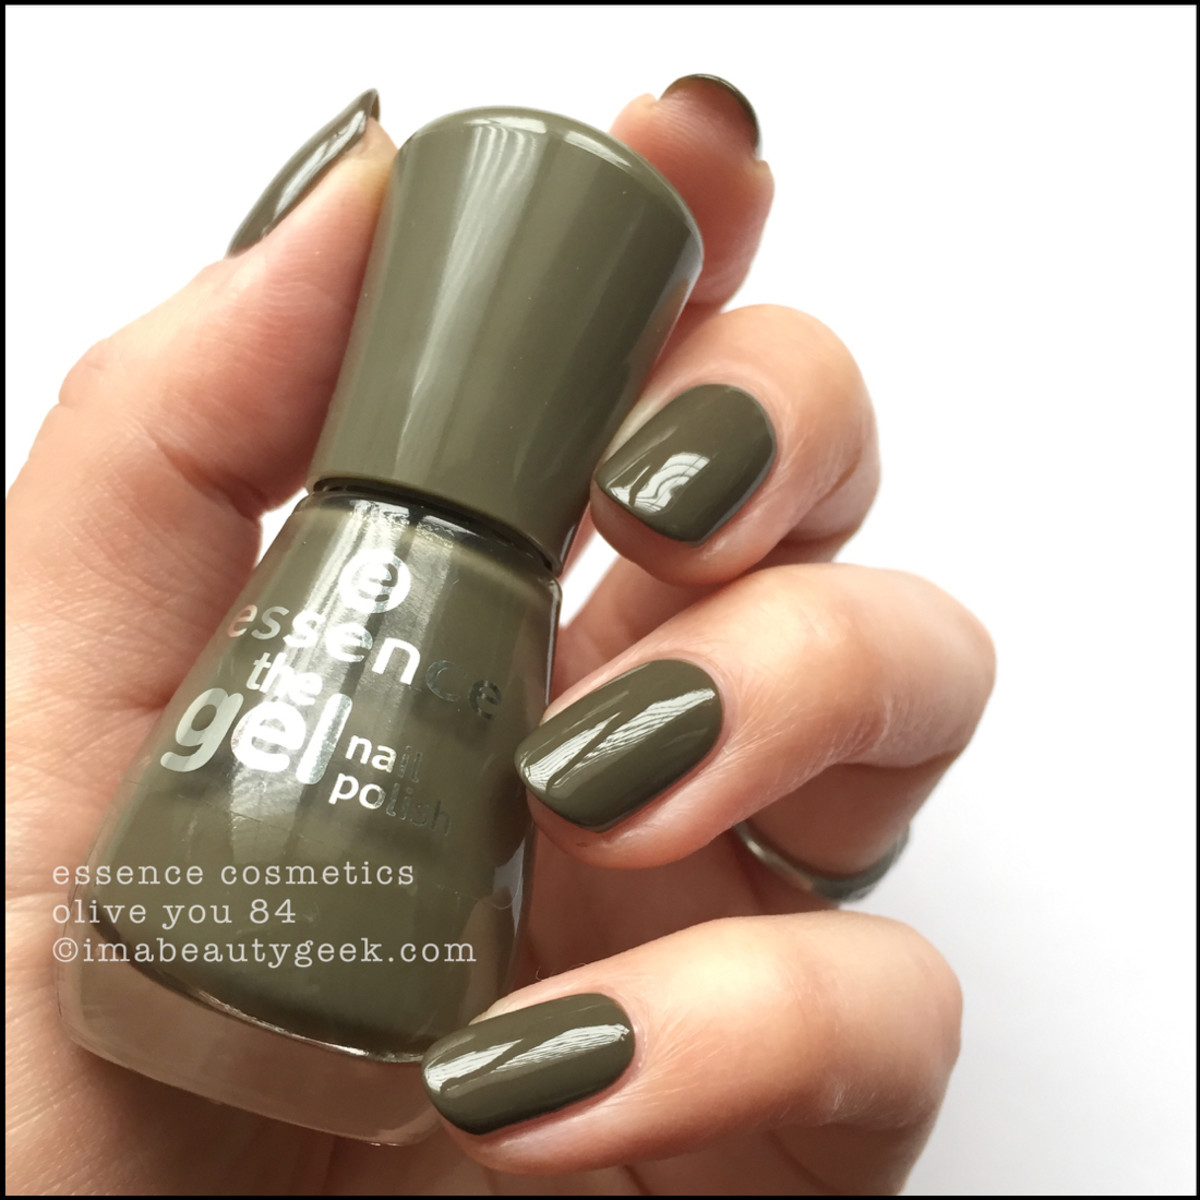 nail polish designs olive green gel nail best nail designs 2018 31380